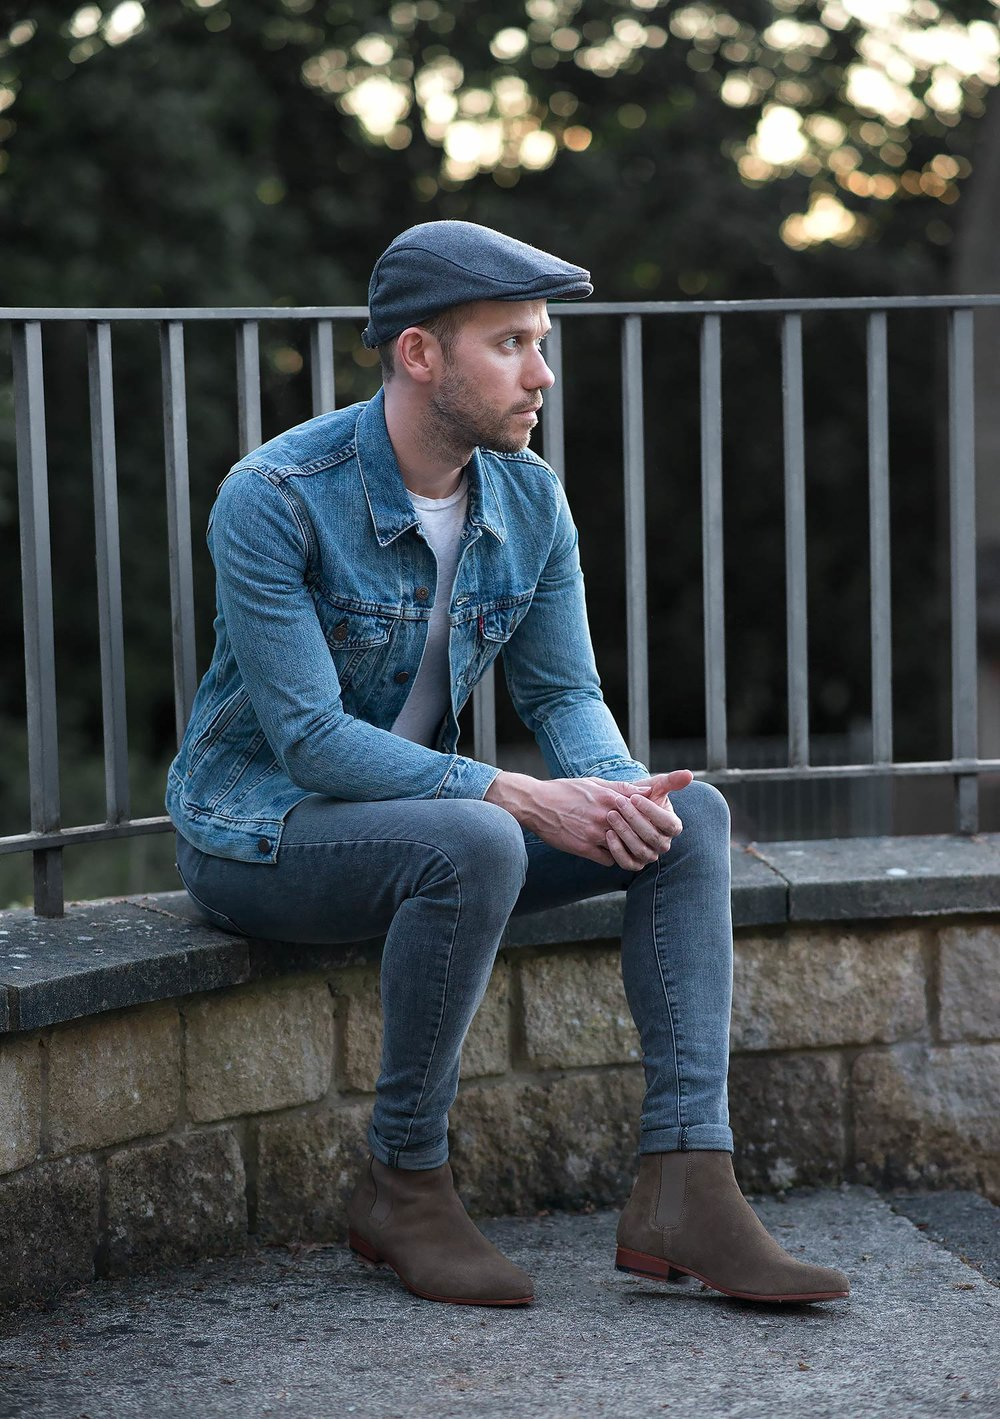 Mens-Fashion-Blogger-Levis-Light-Blue-Denim-Jacket-Chelsea-Boots-3.jpg